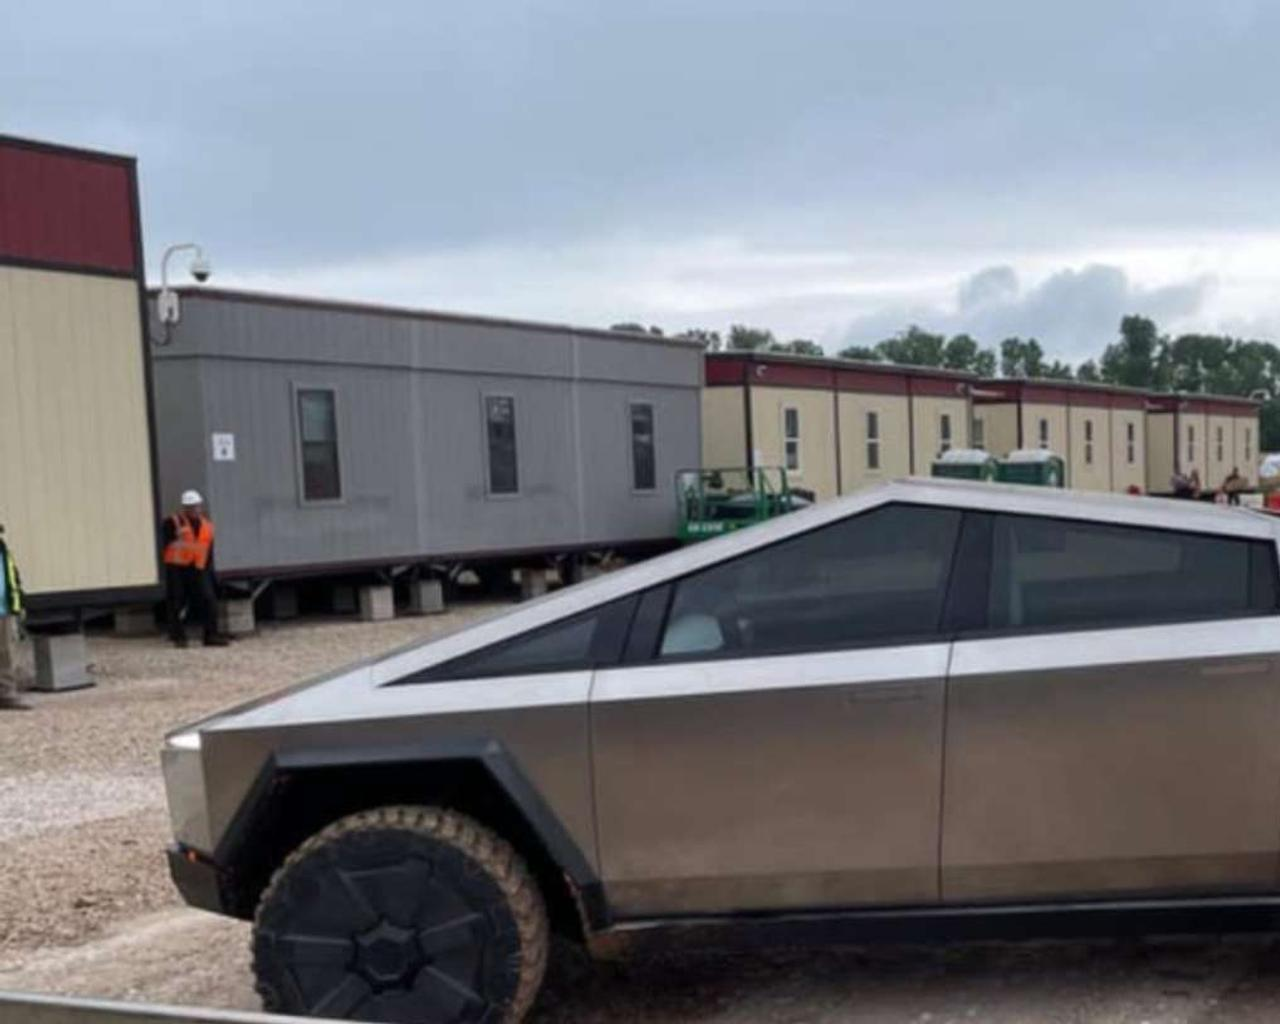 This is how Elon Musk arrived driving a Tesla Cybertruck to the factory where the vehicle will be mass-produced.